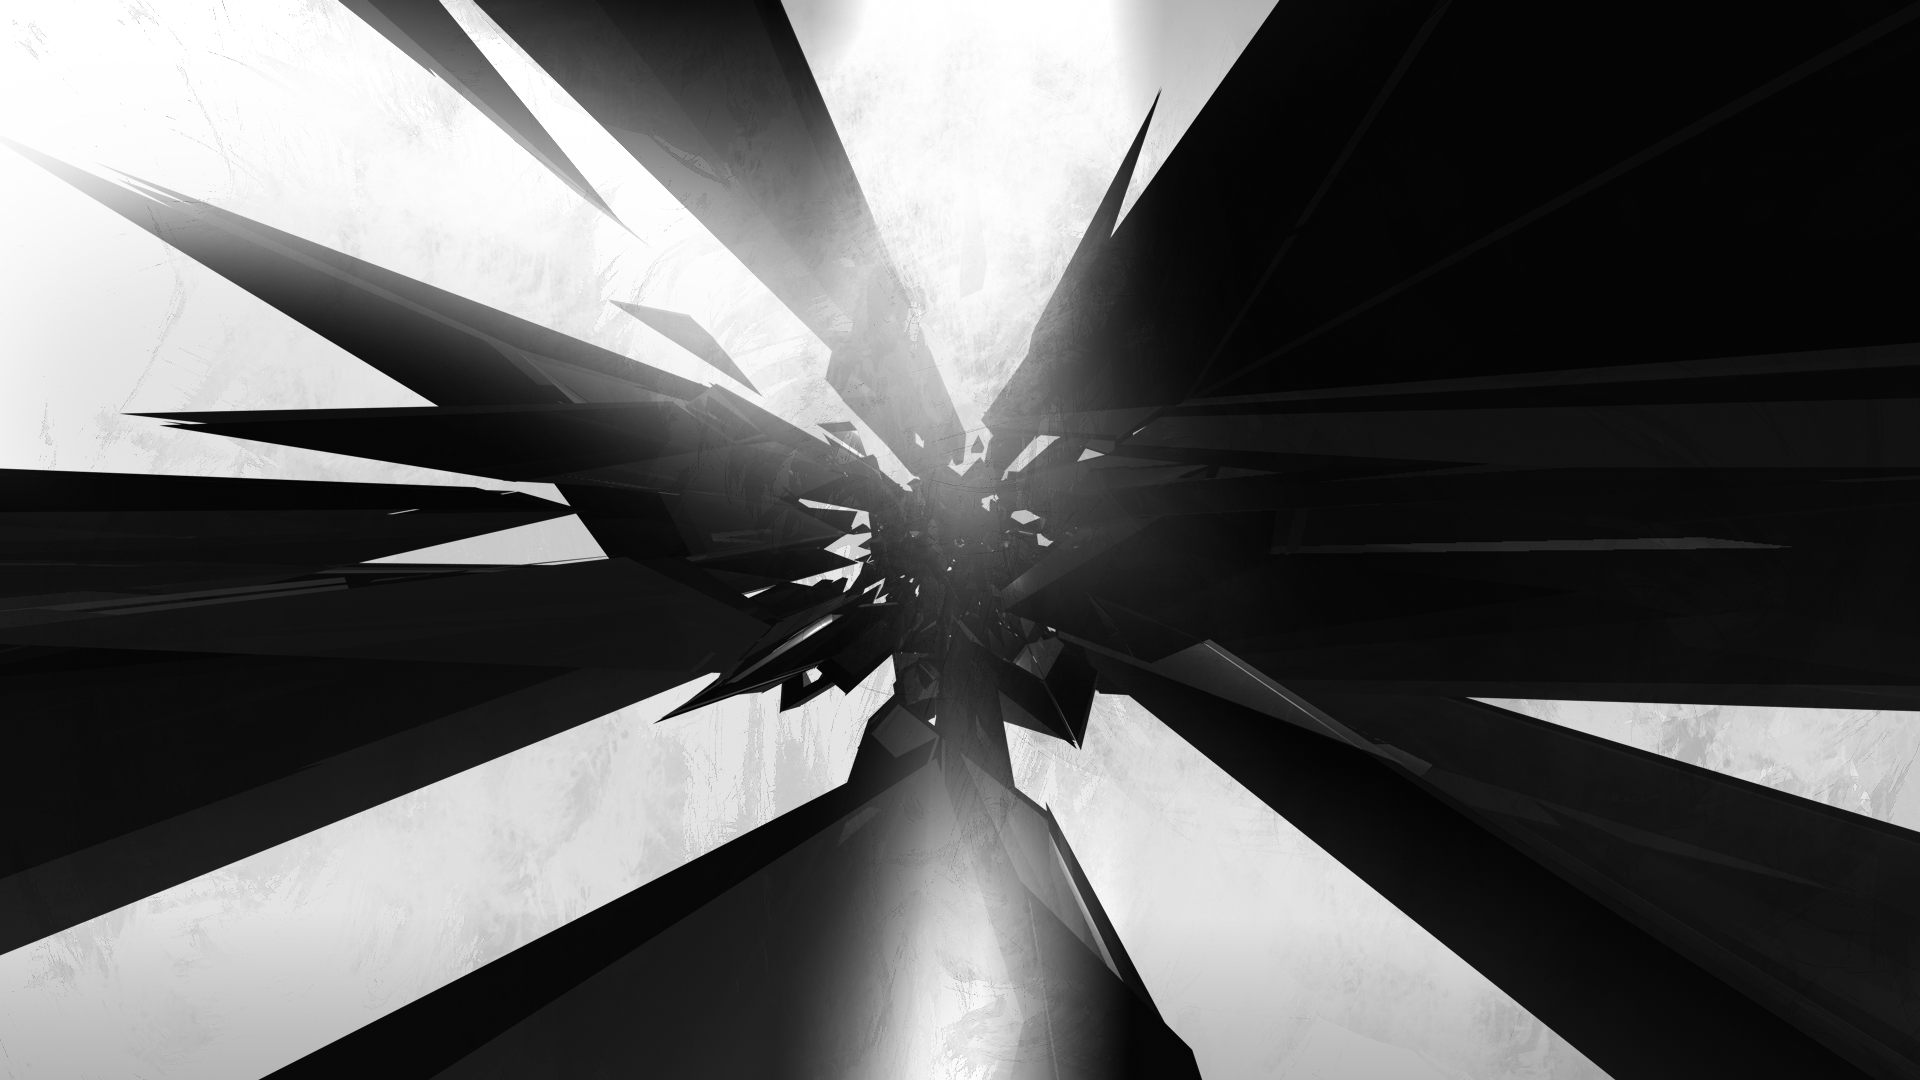 Another Black And White Abstract Wallpaper by TomSimo on 1920x1080